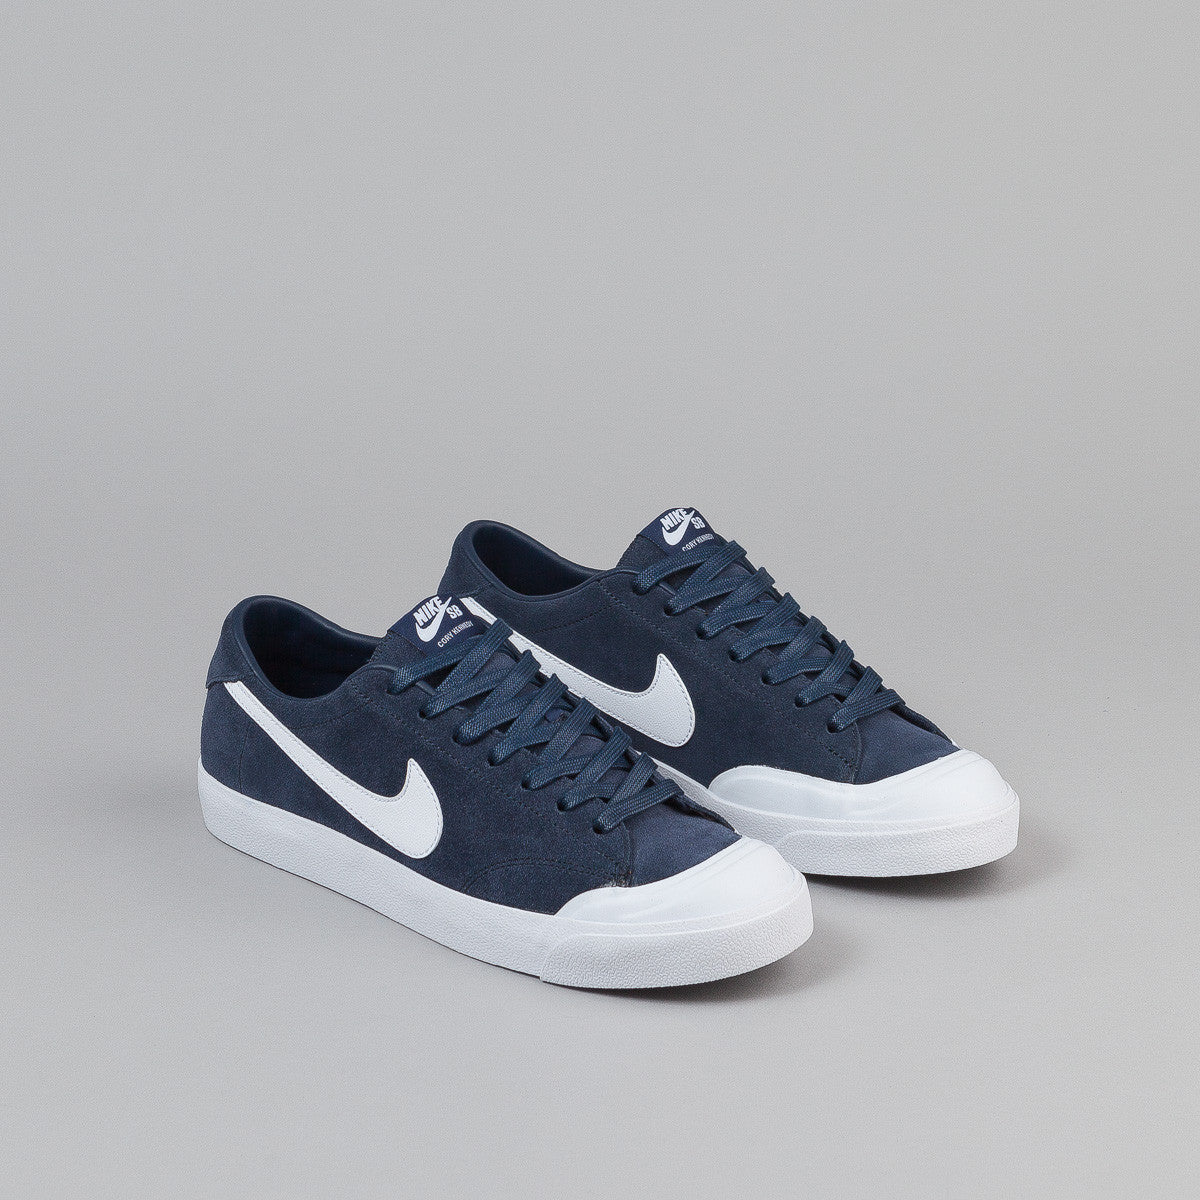 nike sb air zoom all court ck obsidian white flatspot. Black Bedroom Furniture Sets. Home Design Ideas